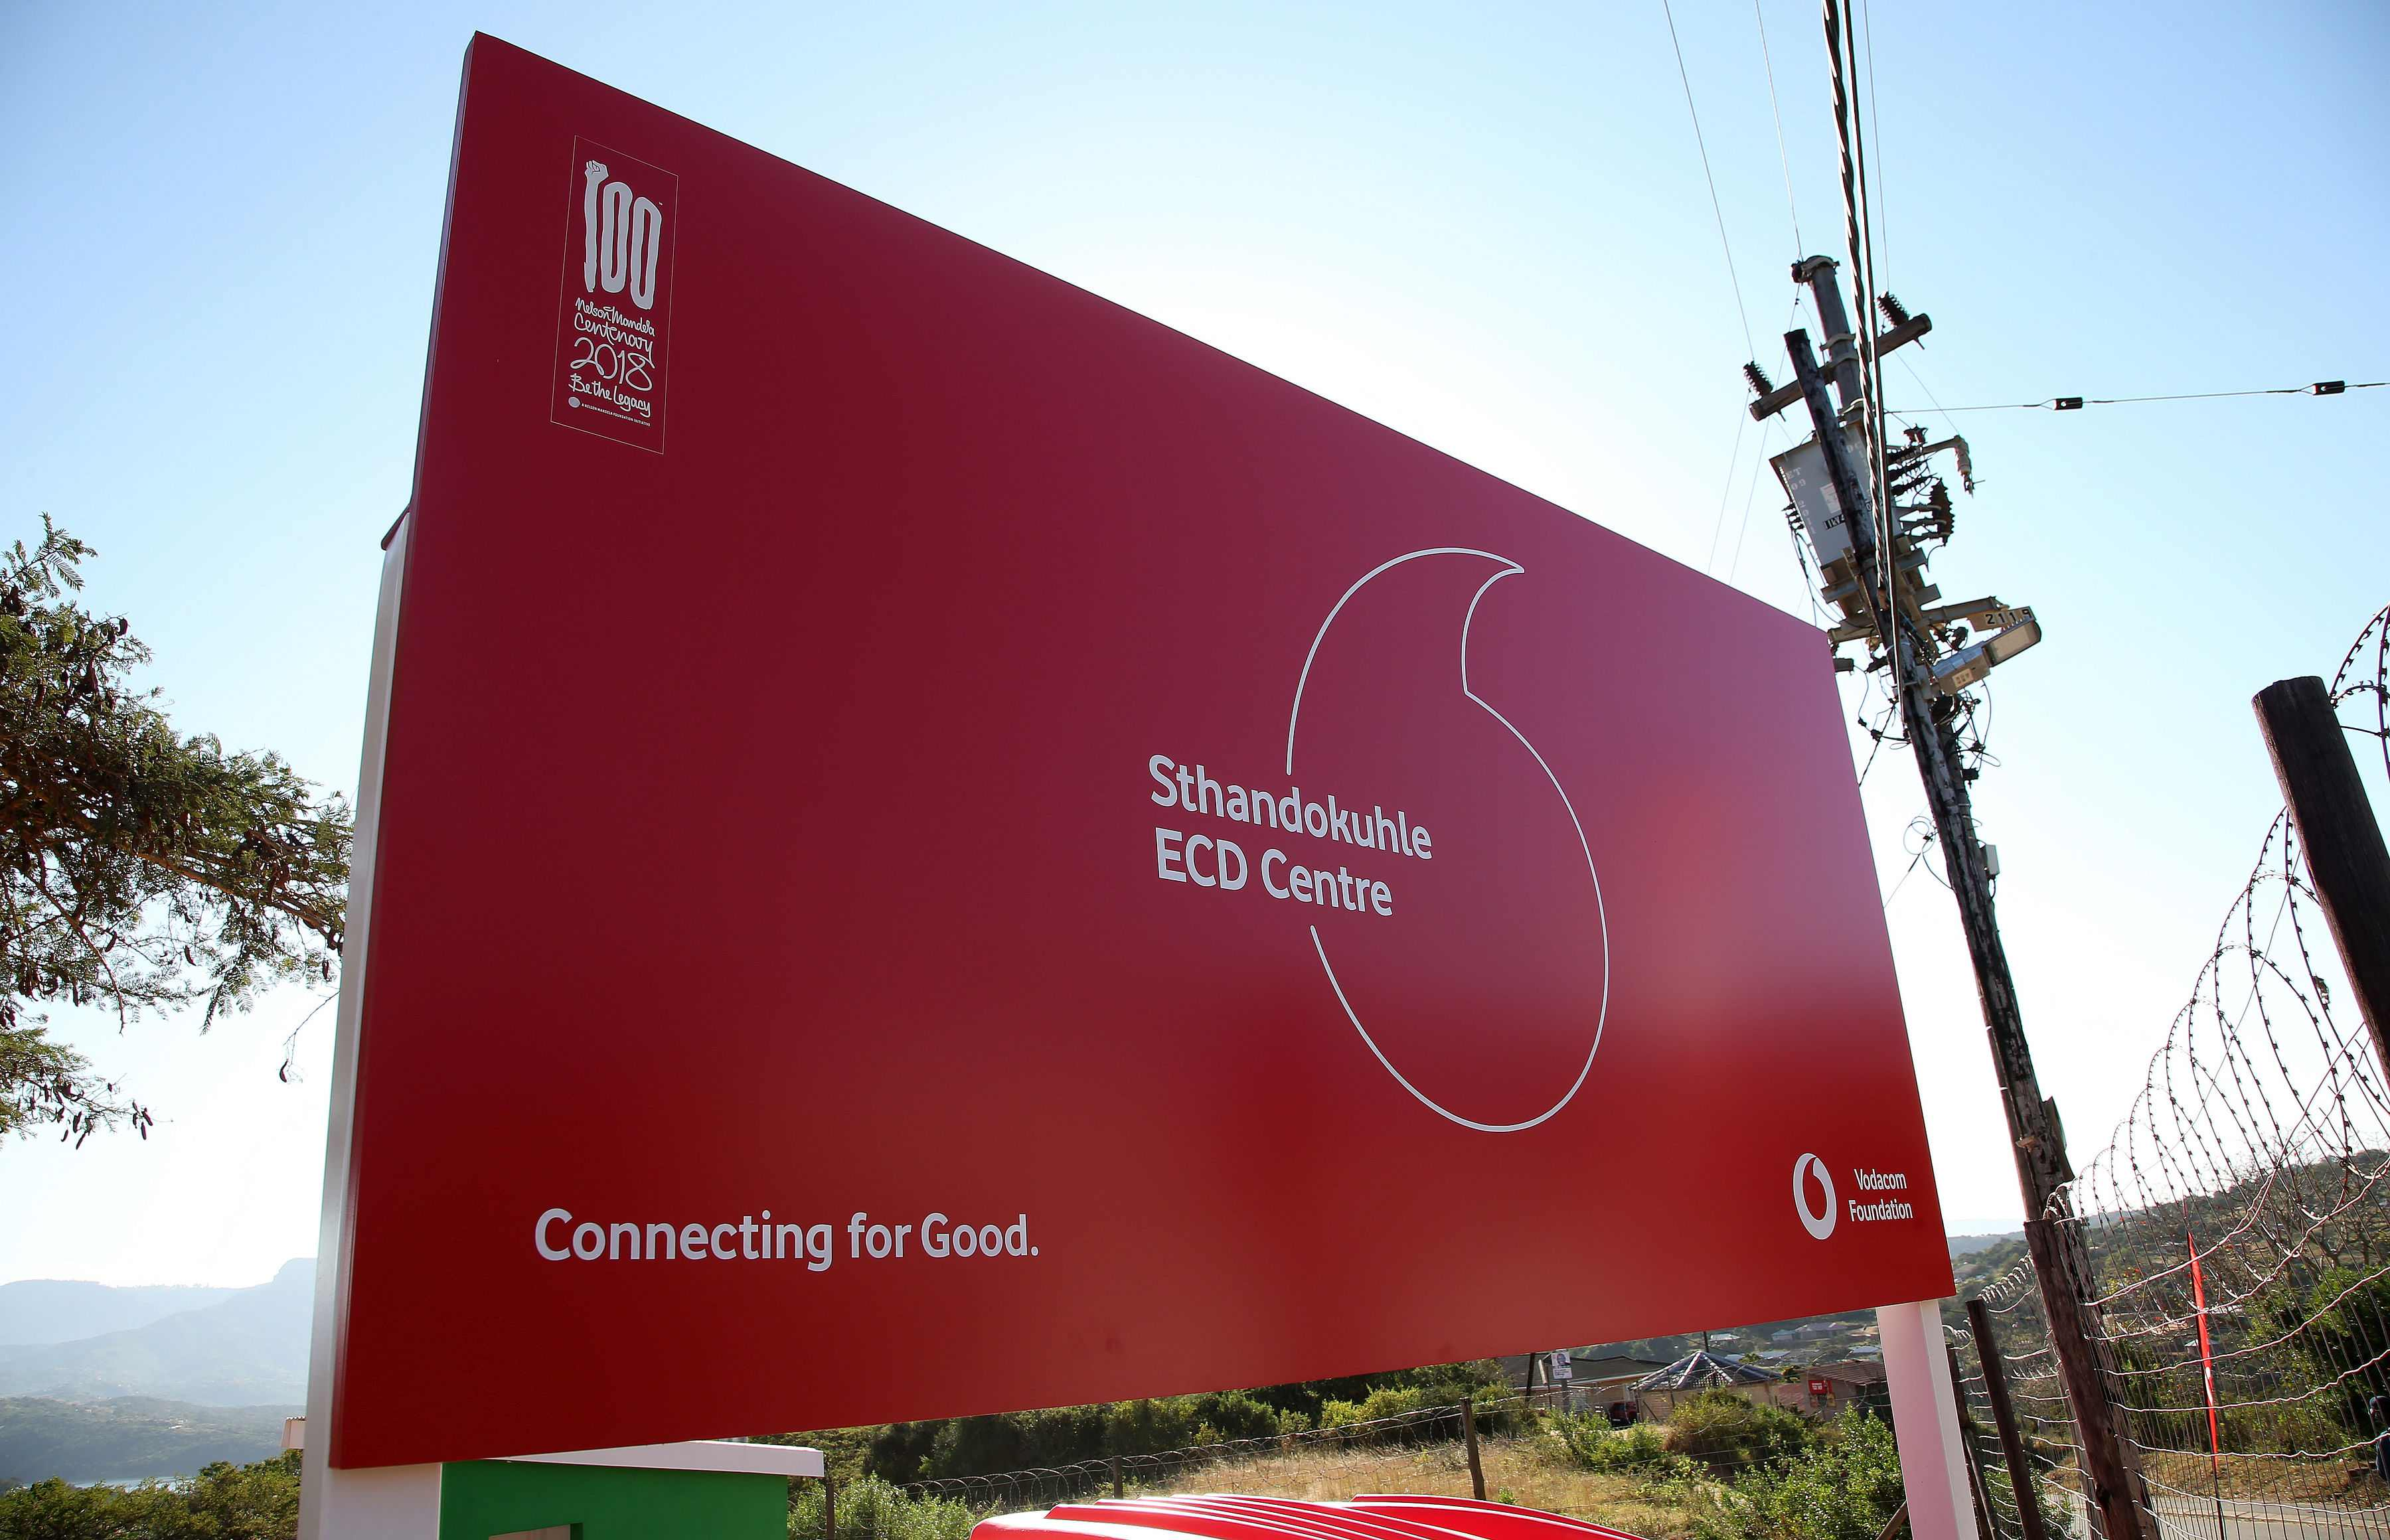 Vodacom Foundation's ECD Centre in Sthandokuhle, South Africa